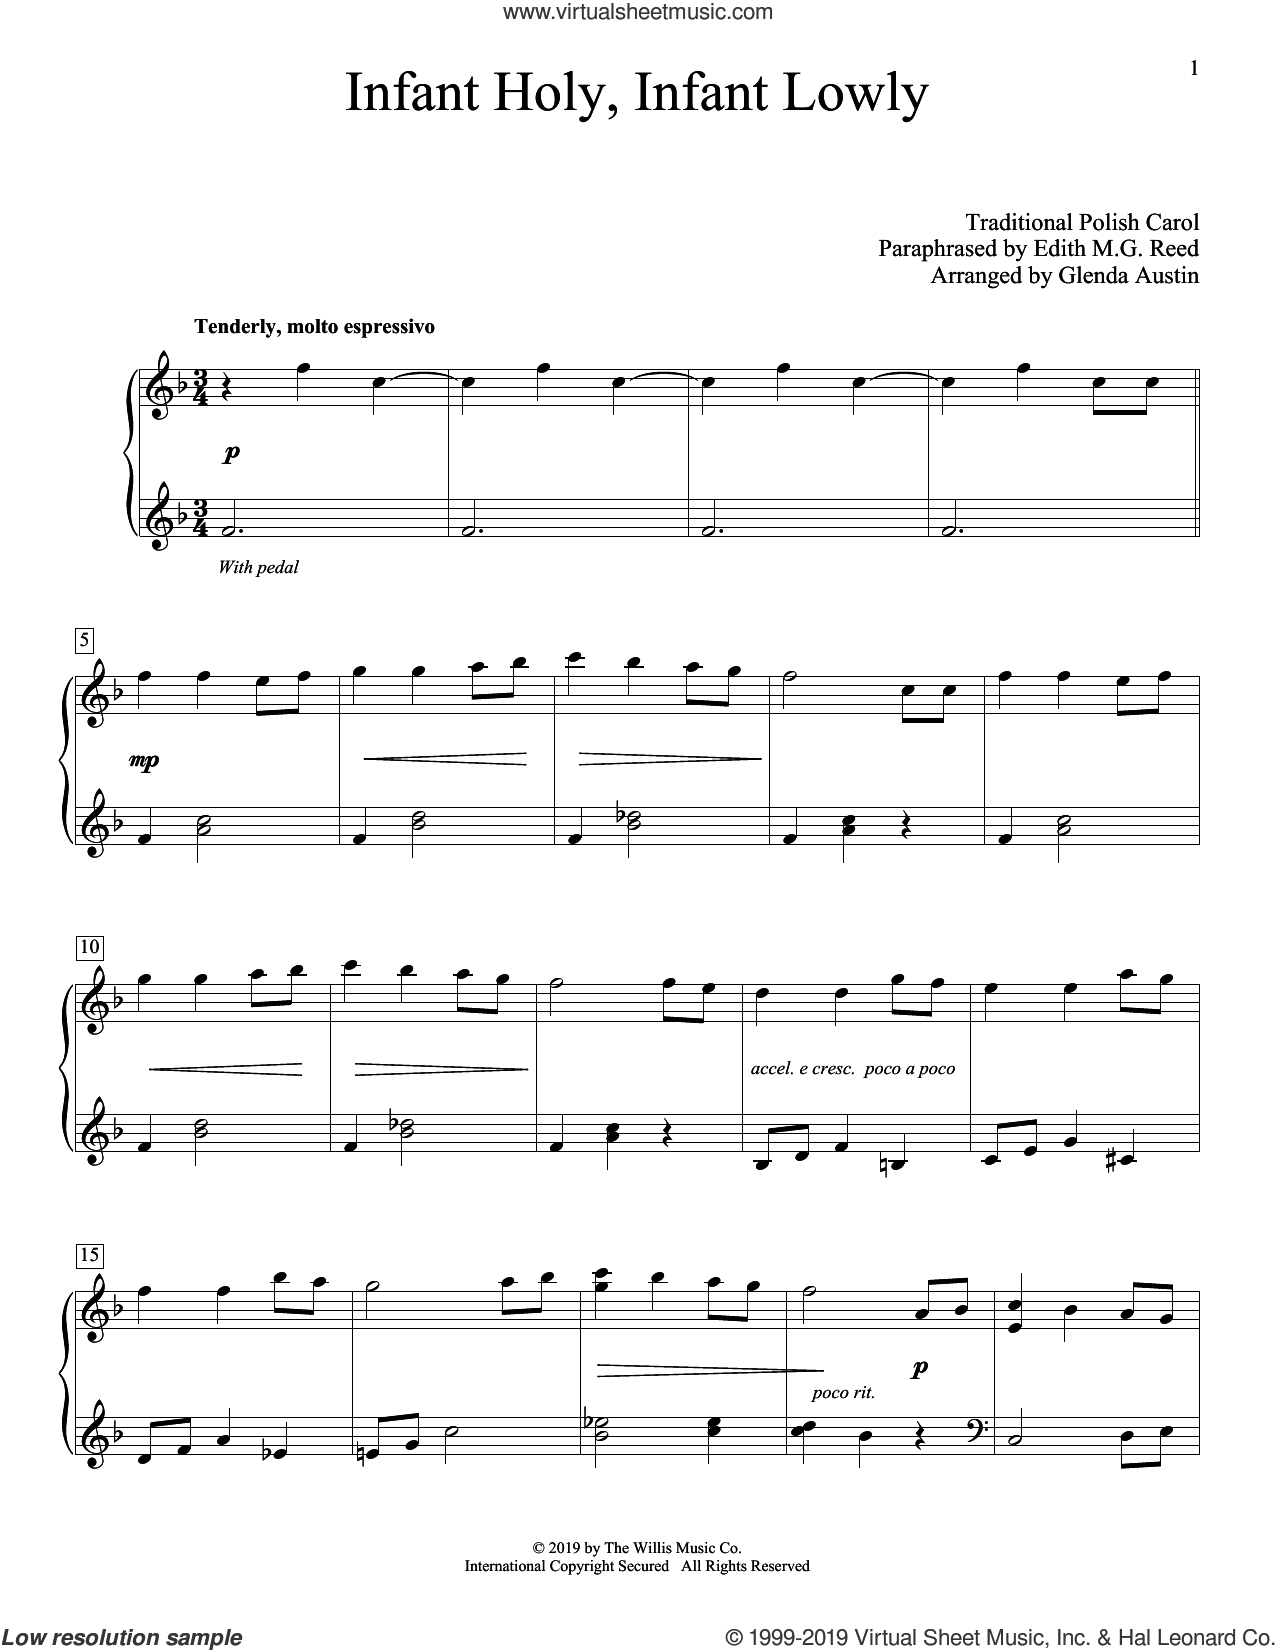 Infant Holy, Infant Lowly (arr. Glenda Austin) sheet music for piano solo by Edith M.G. Reed, Glenda Austin and Miscellaneous, intermediate skill level